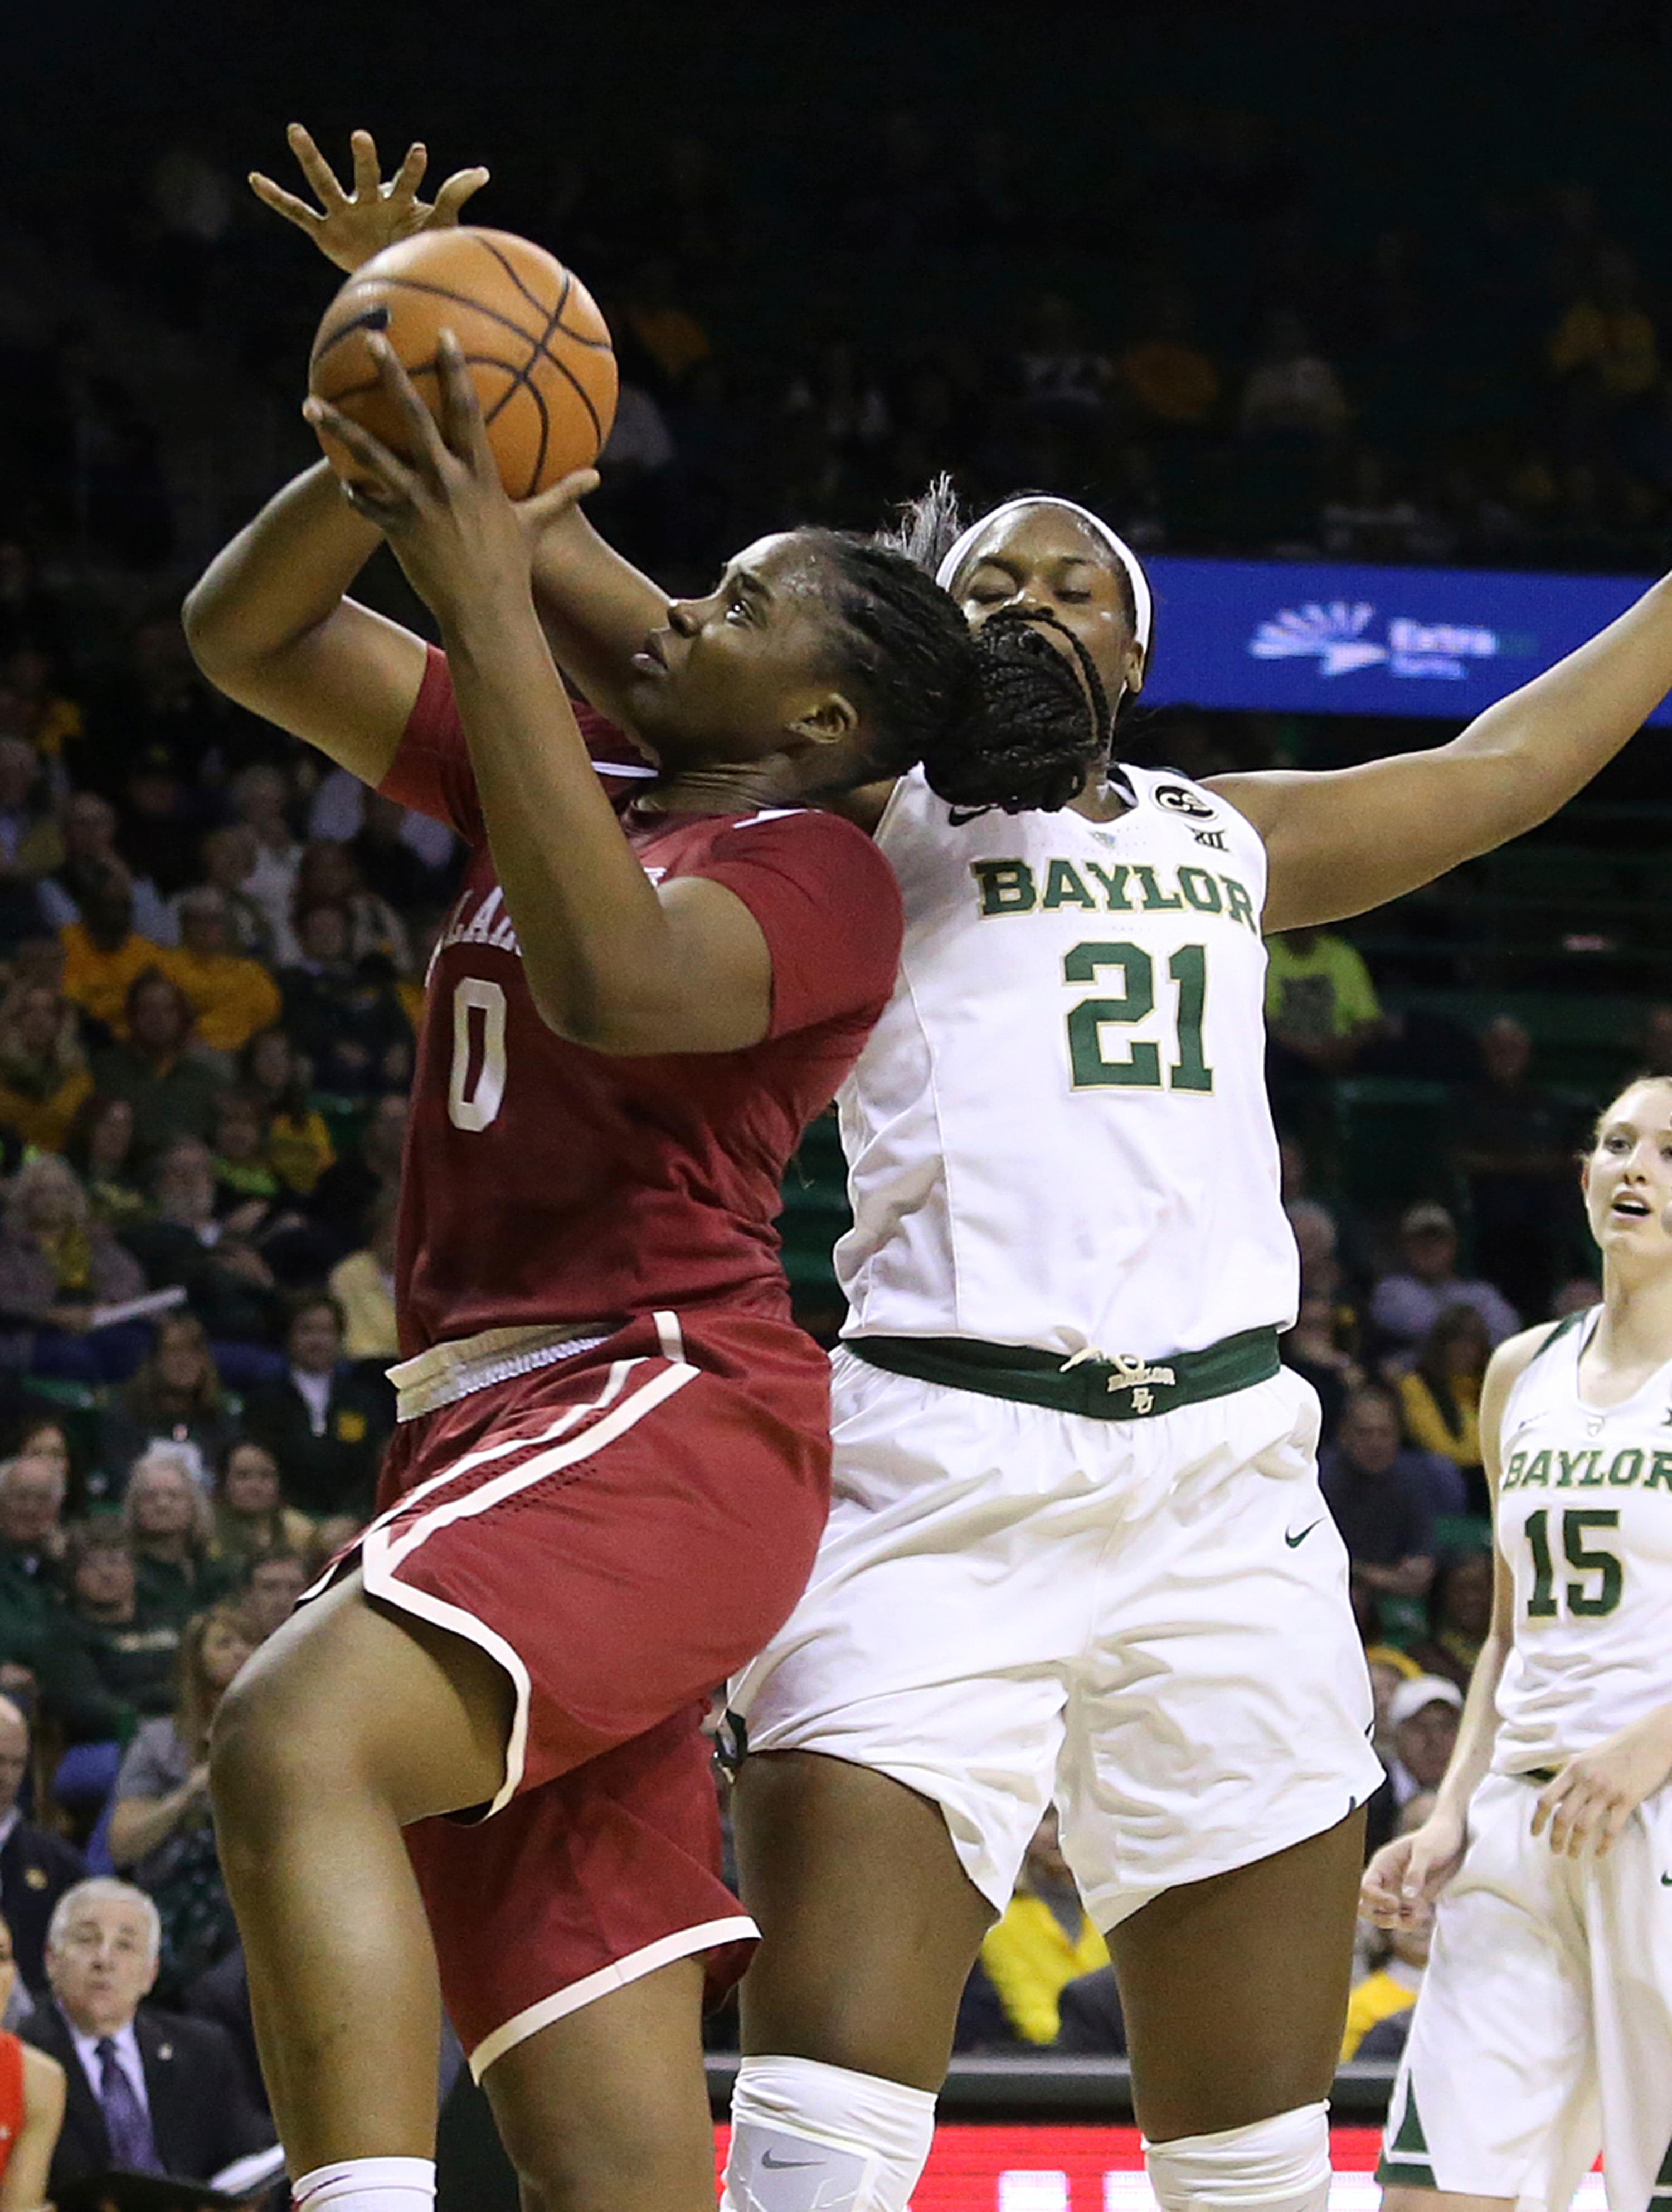 Oklahoma center Vionise Pierre-Louis, left, is fouled by Baylor center Kalani Brown, right, during the first half of an NCAA college basketball game, Monday, Feb. 5, 2018, in Waco, Texas. (AP Photo/Jerry Larson)